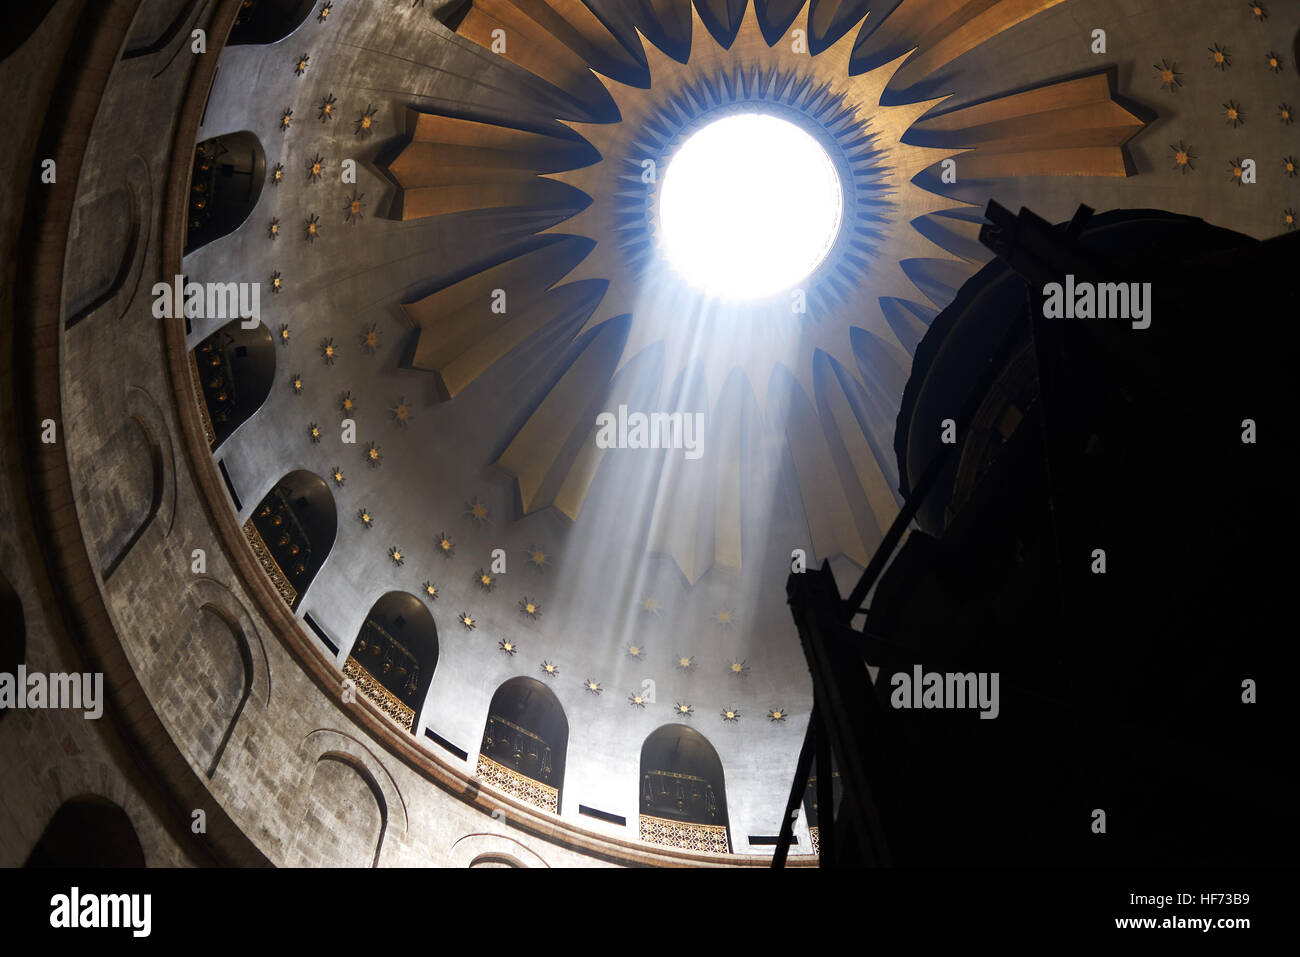 May 05, 2016 Church of the Holy Sepulchre, Jerusalem, Israel - Stock Image